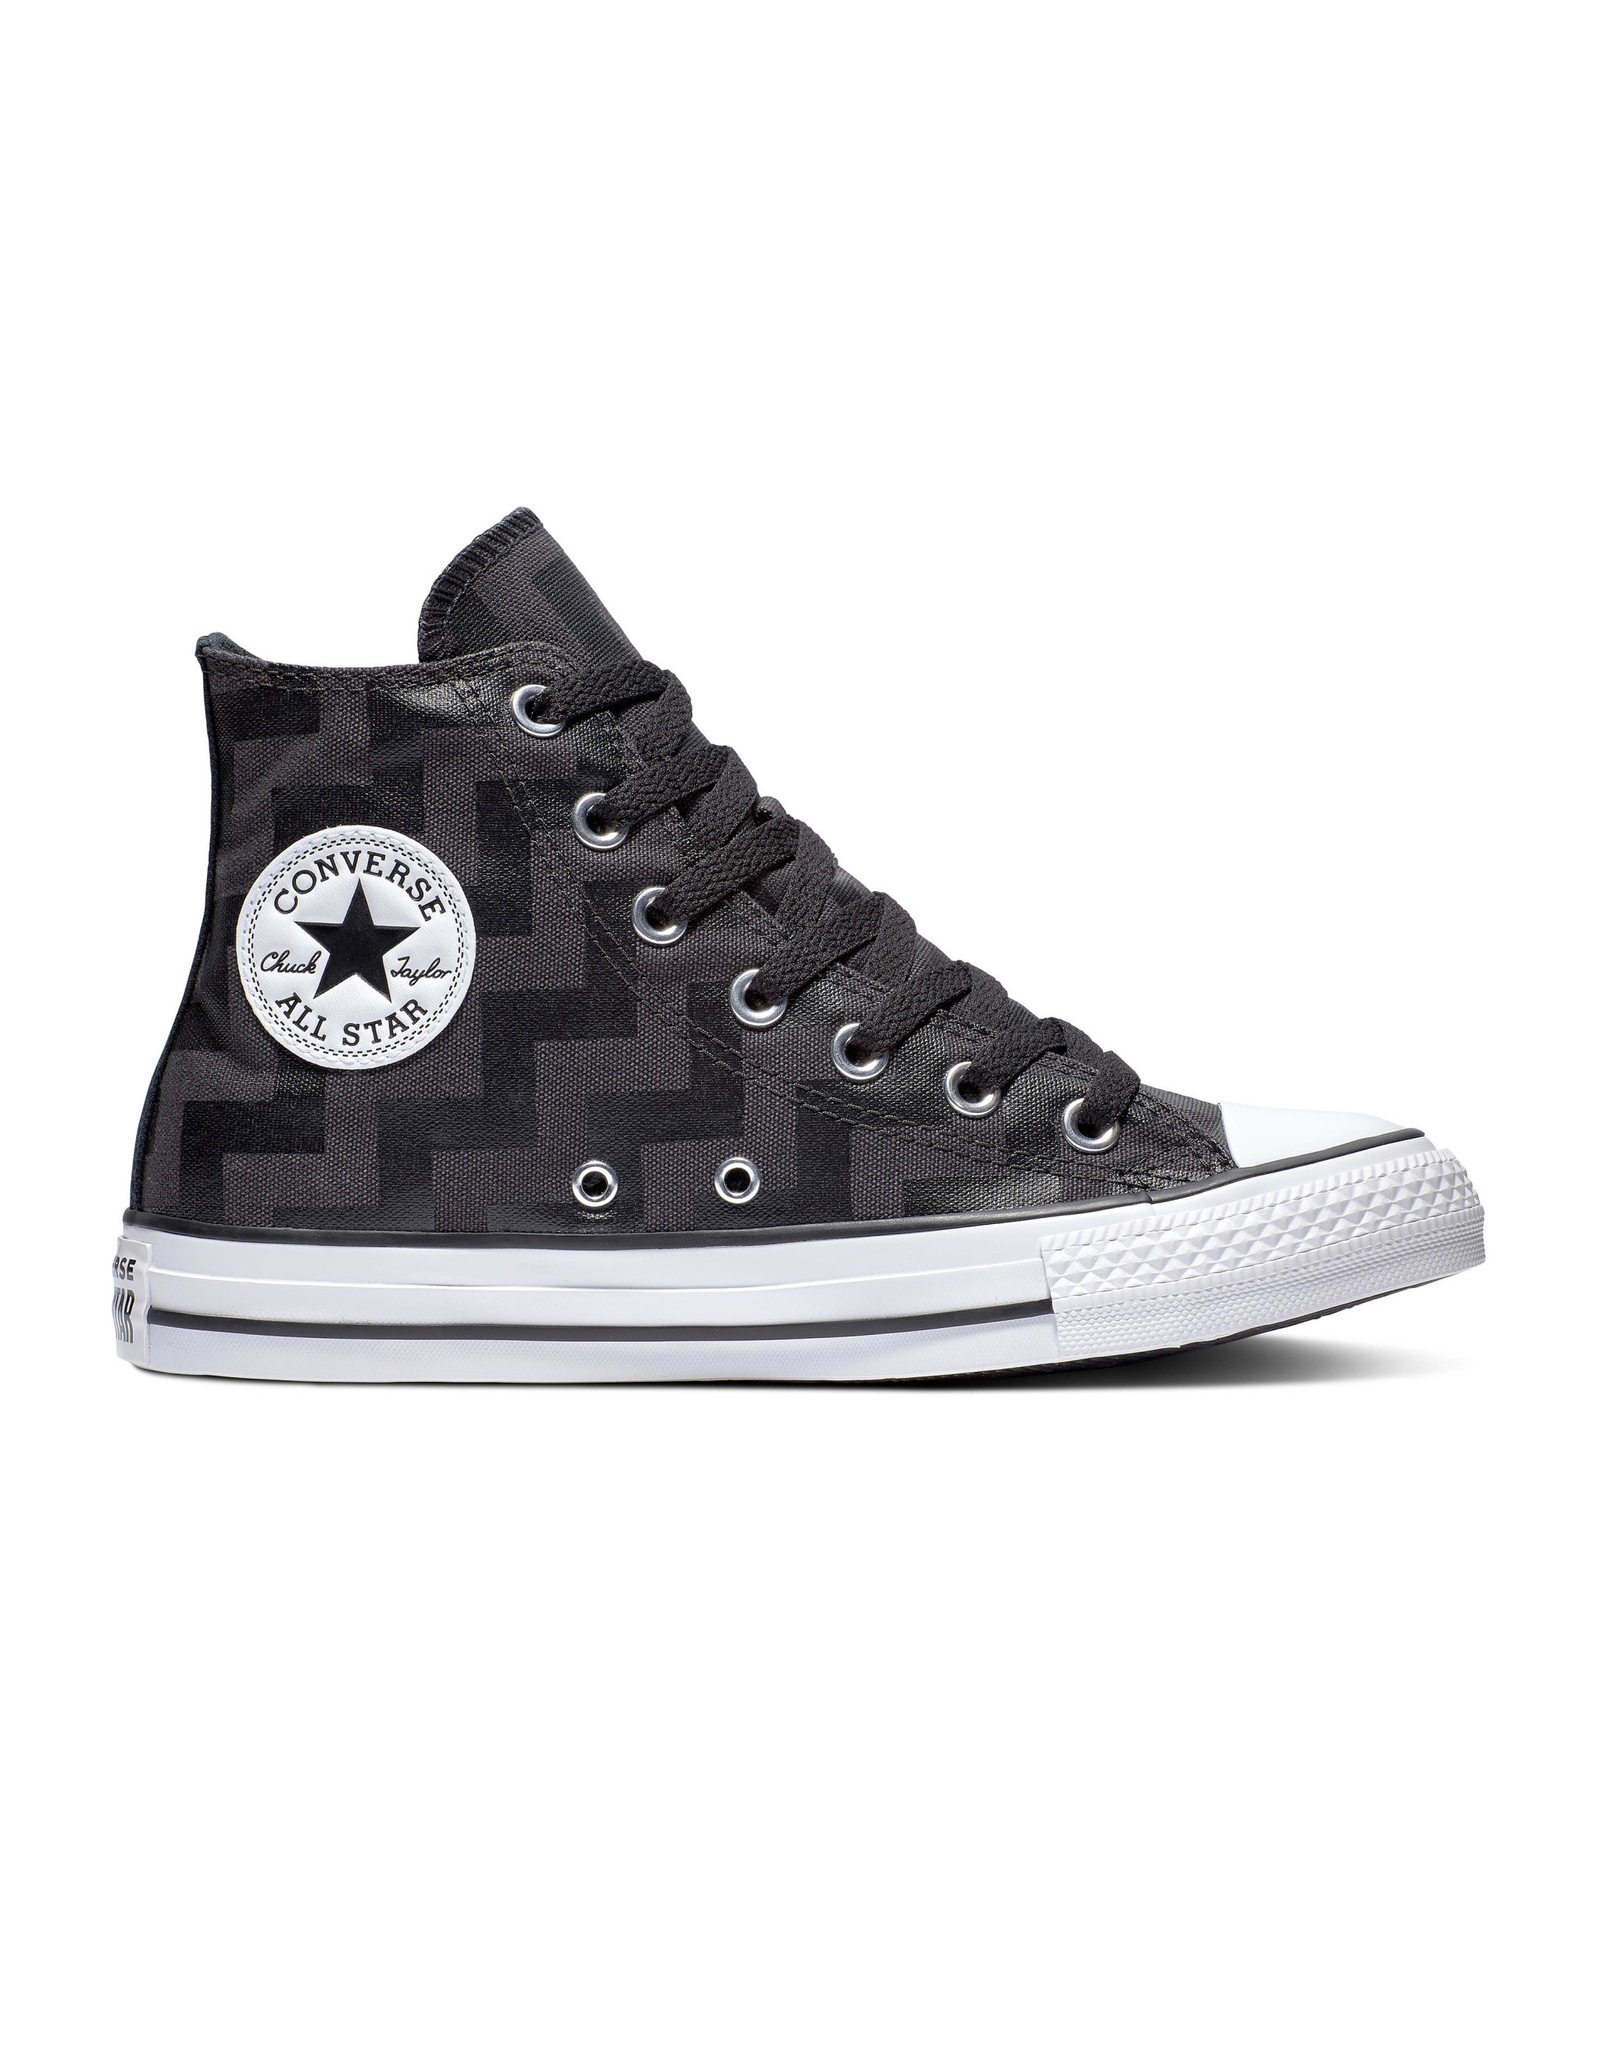 CONVERSE CHUCK TAYLOR ALL STAR HI BLACK/ALMOST BLACK/WHITE C19SAL-565212C